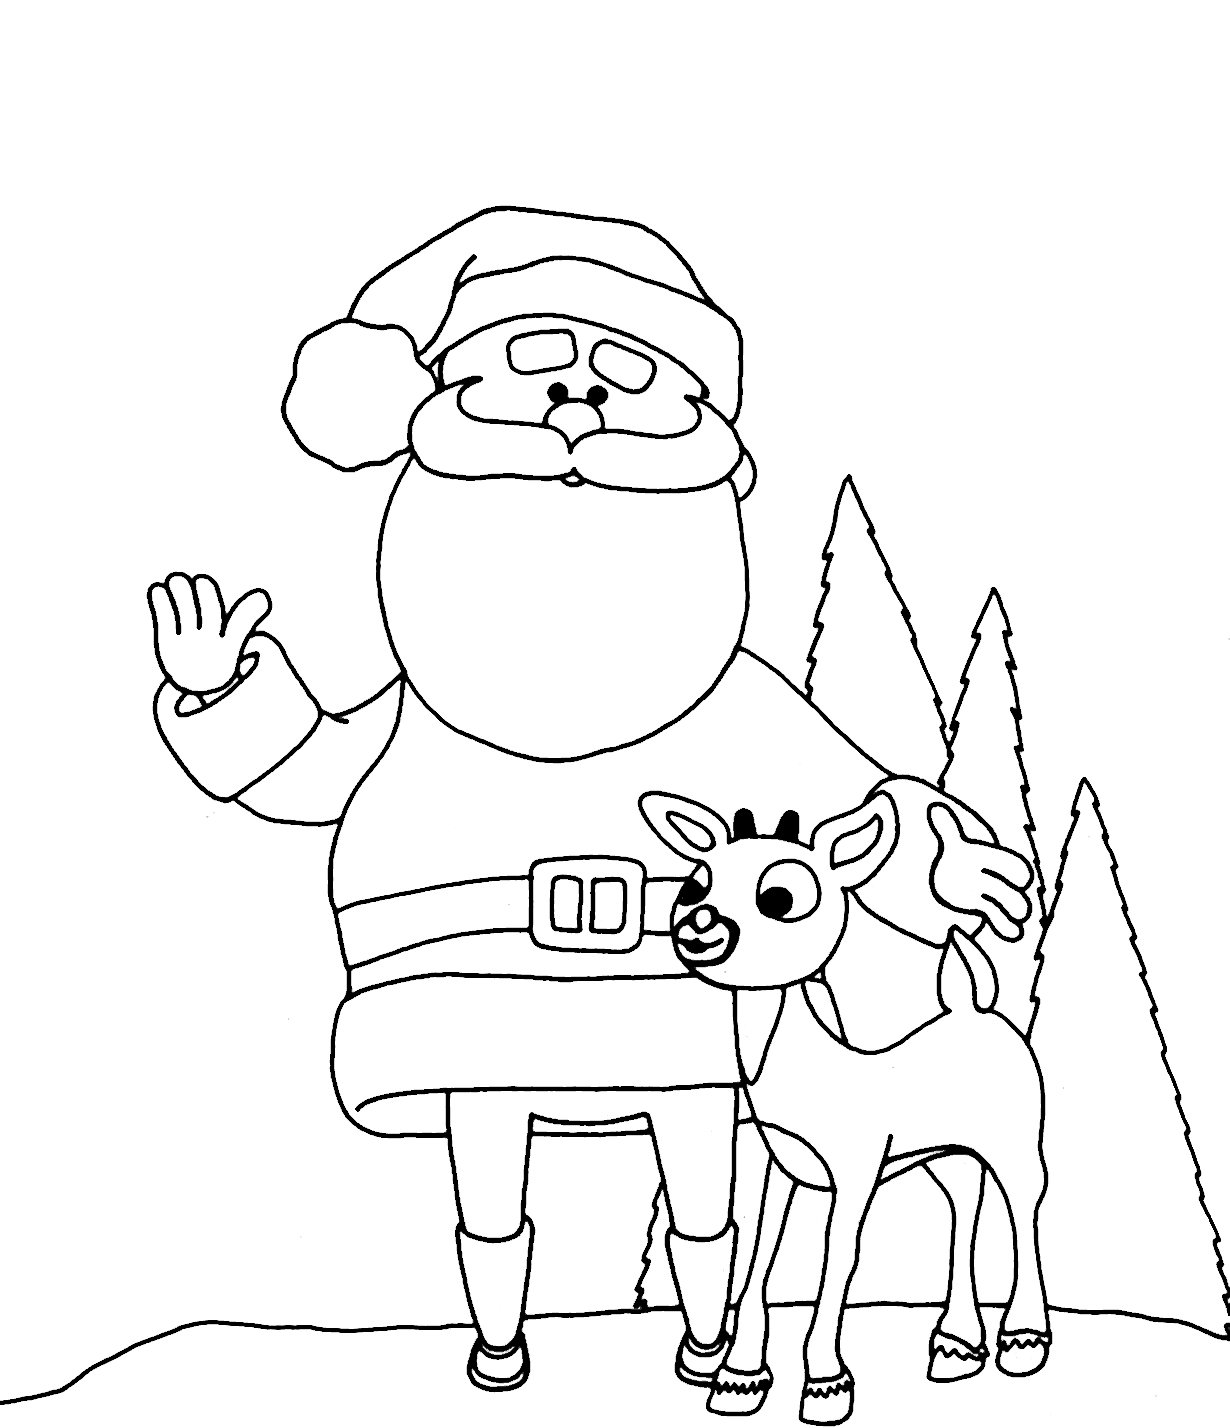 Download Coloring Pages  Printable Reindeer Coloring Pages